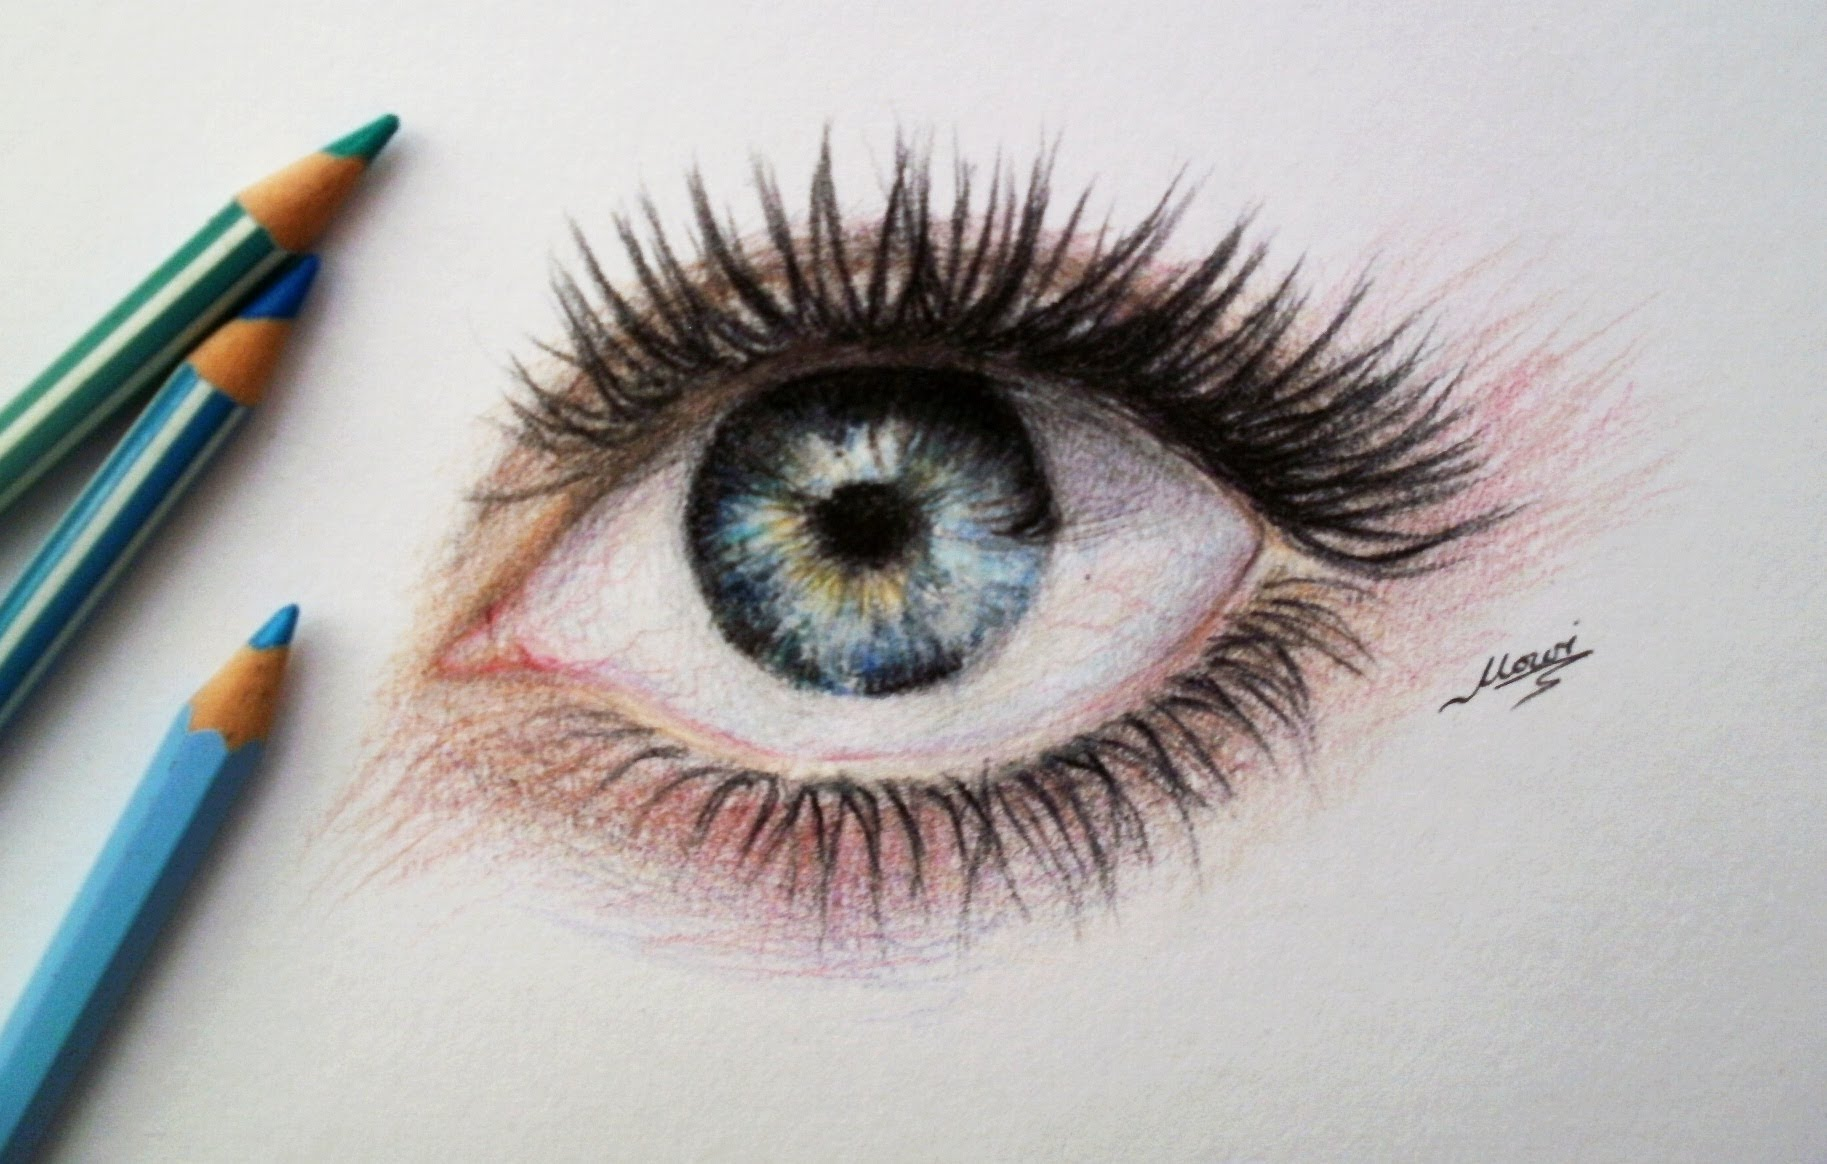 Eyes Tumblr Drawing At Getdrawings Com Free For Personal Use Eyes